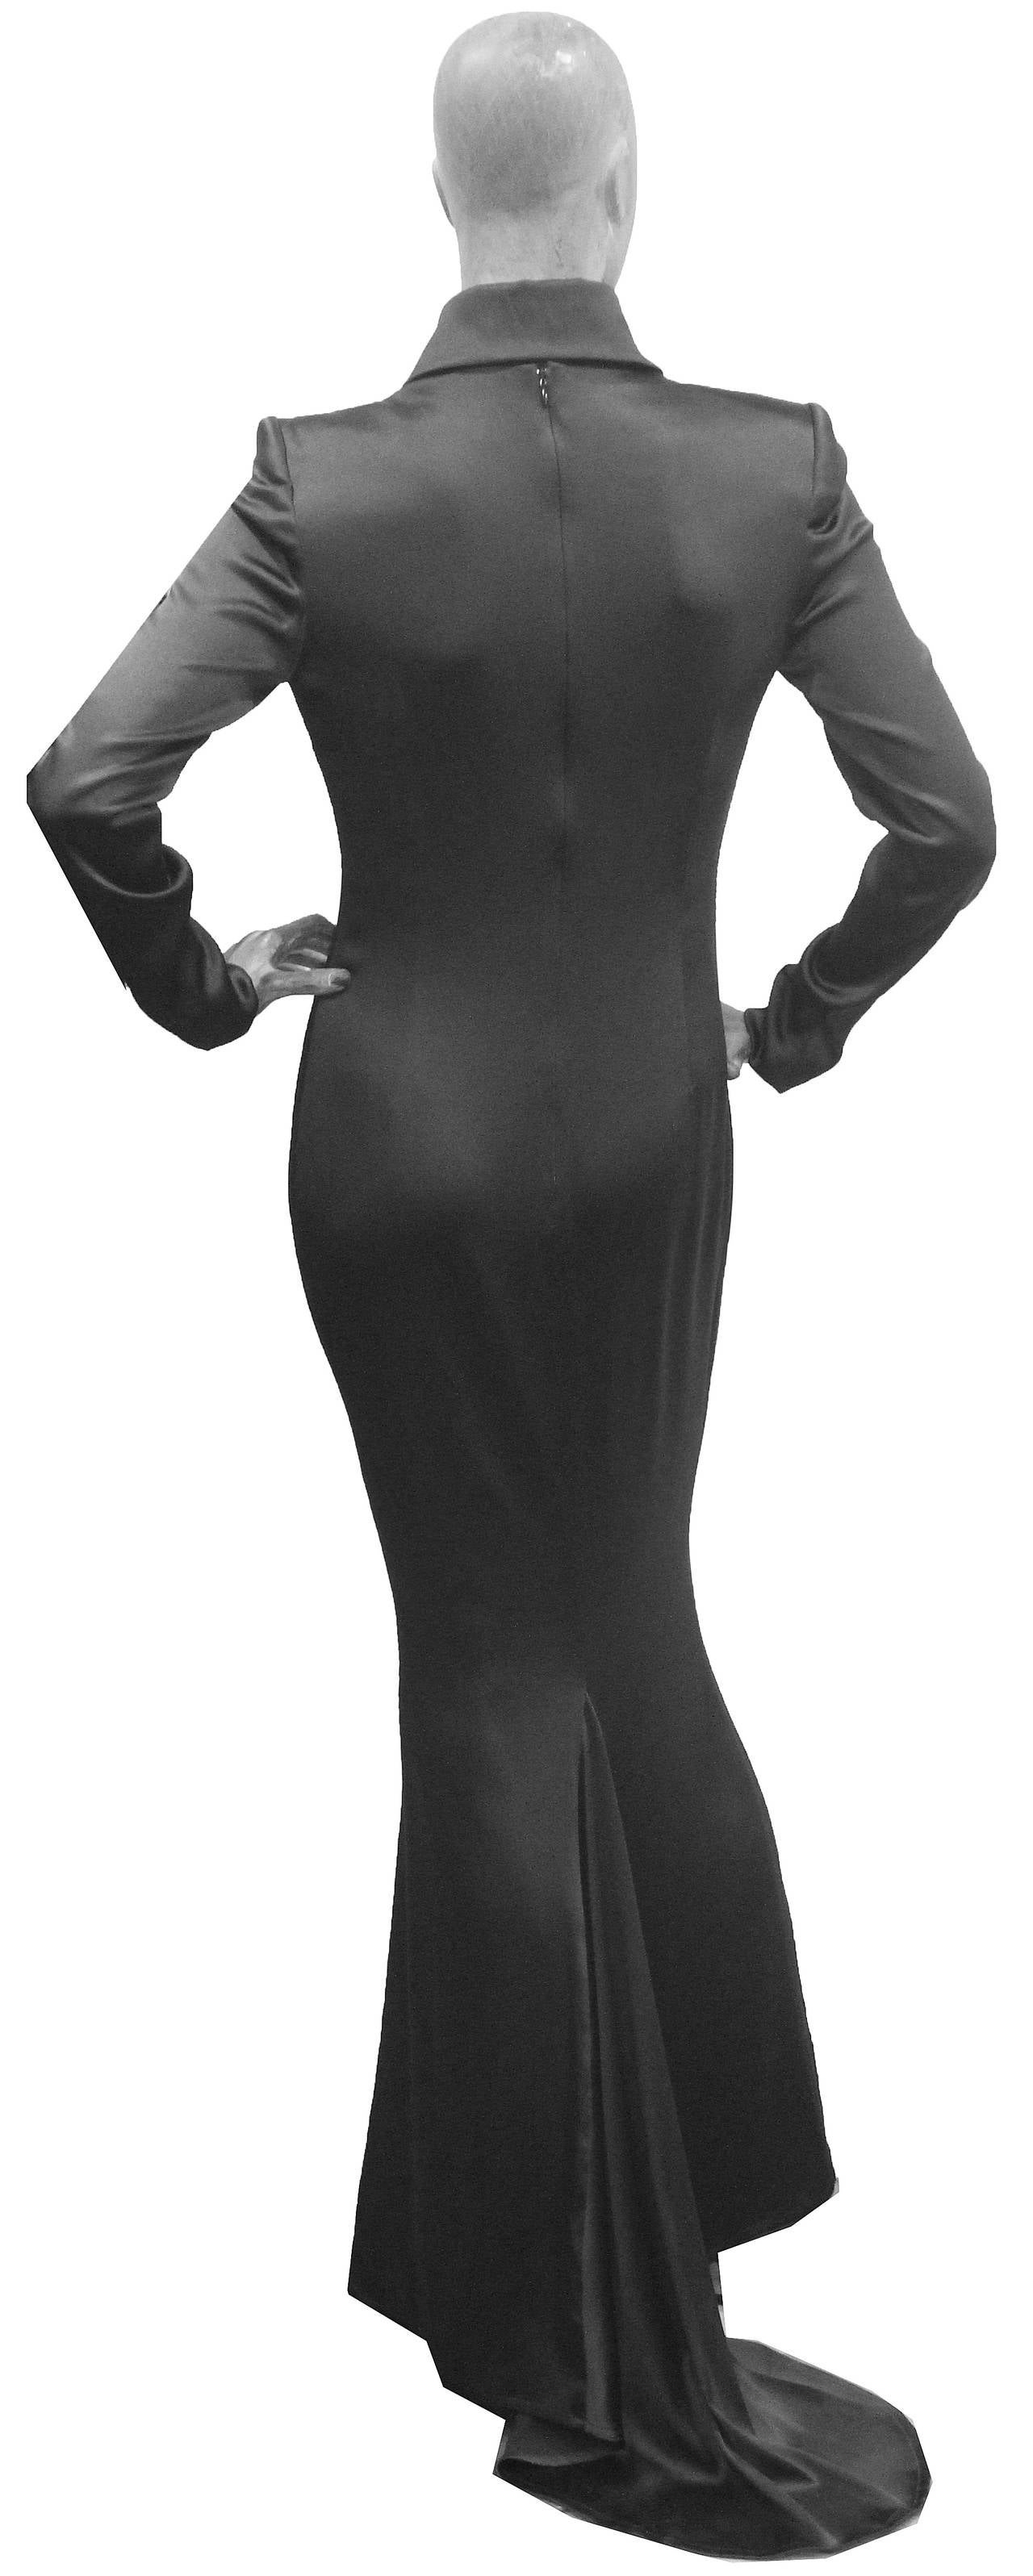 1990s Givenchy by Alexander McQueen Black Silk Evening Dress (Unworn) In New never worn Condition For Sale In London, GB